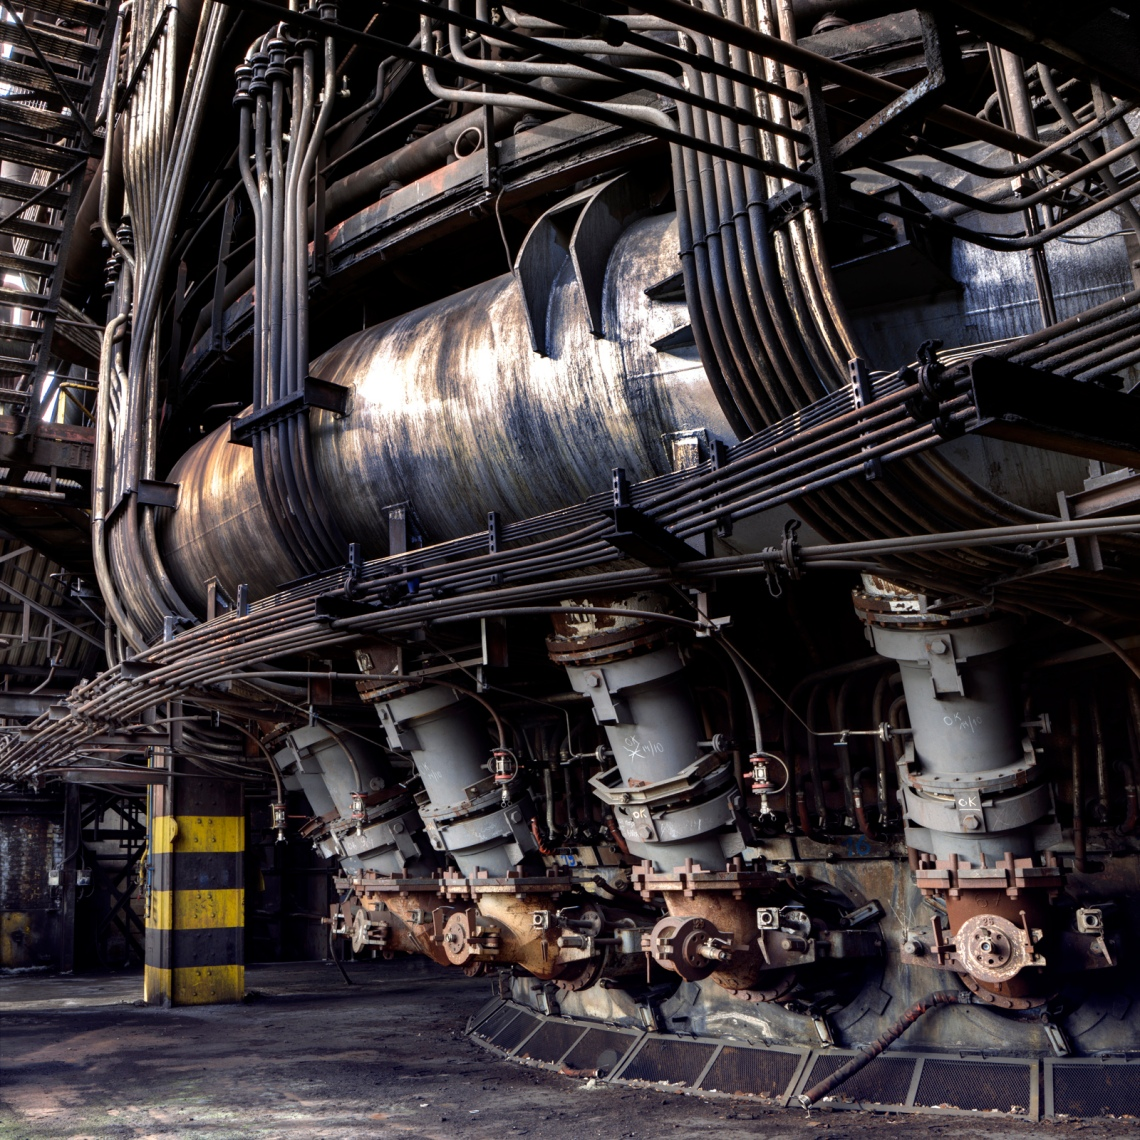 Arc furnace. Photograph by Forgotten Heritage Photography. Used with permission.